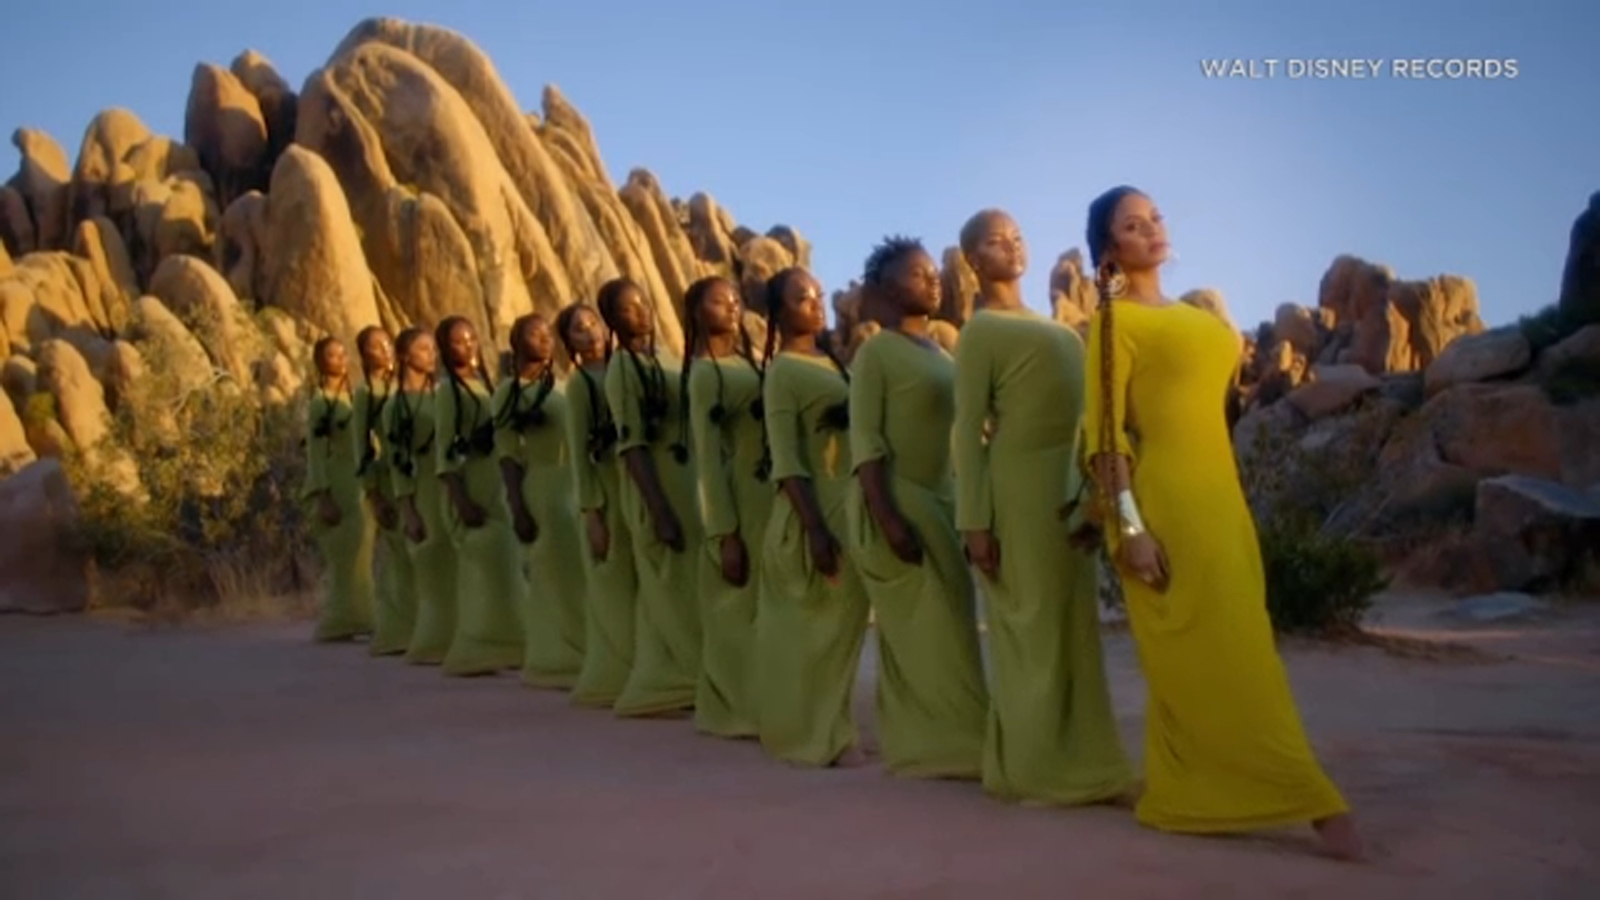 New details about where Beyonce filmed 'Spirit' music video for 'Lion King' soundtrack